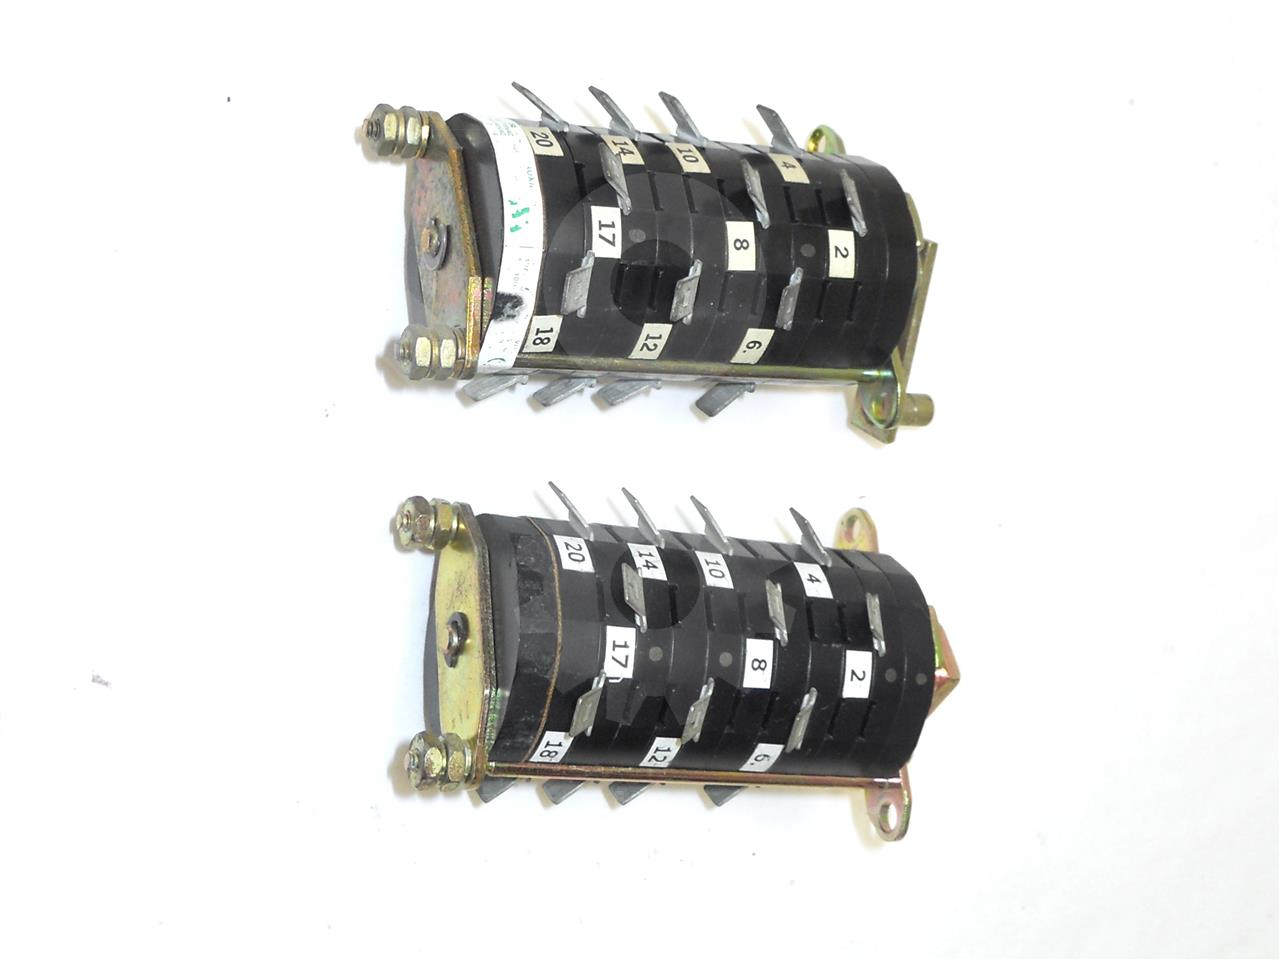 698B822H01 Westinghouse AUXILIARY SWITCH ASSEMBLY 5NO/5NC